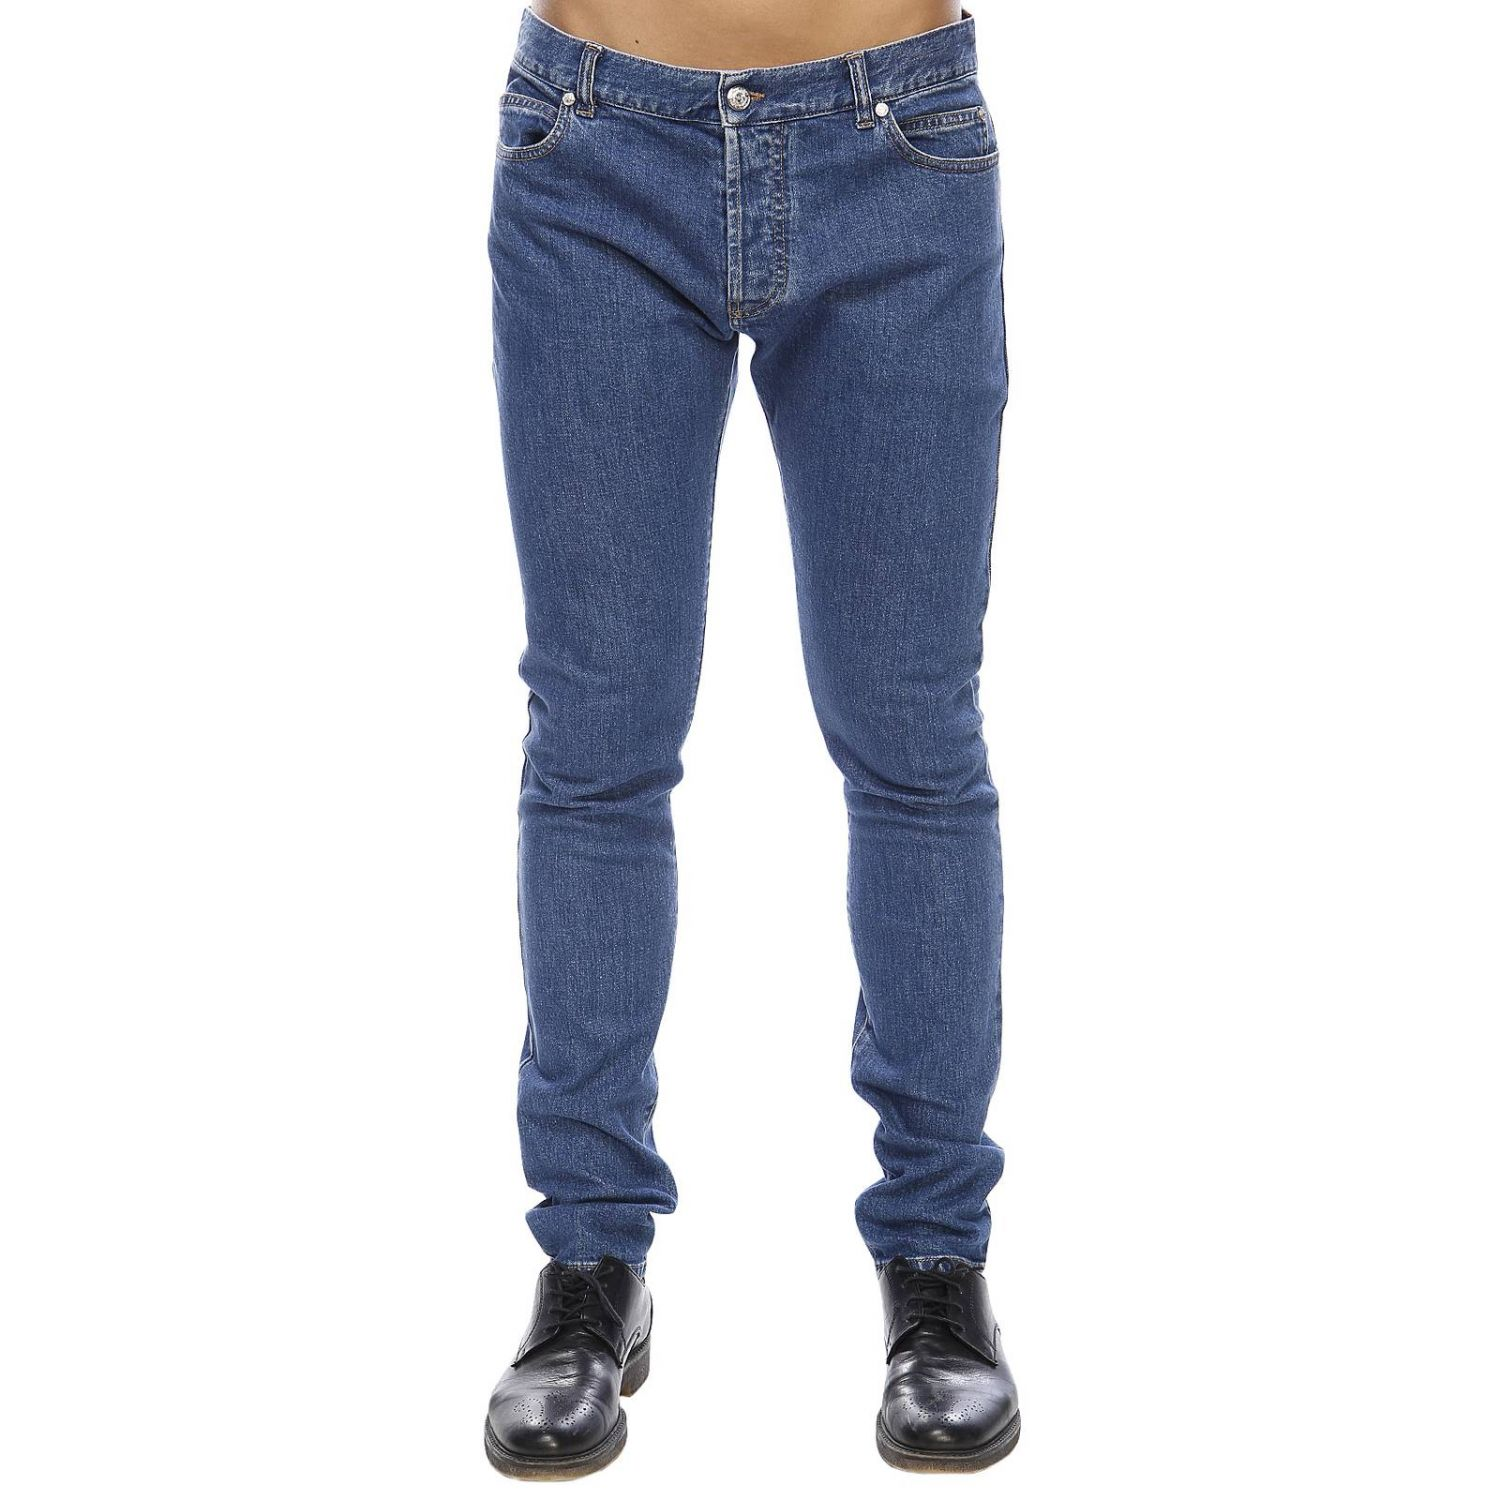 Jeans men Balmain denim 1